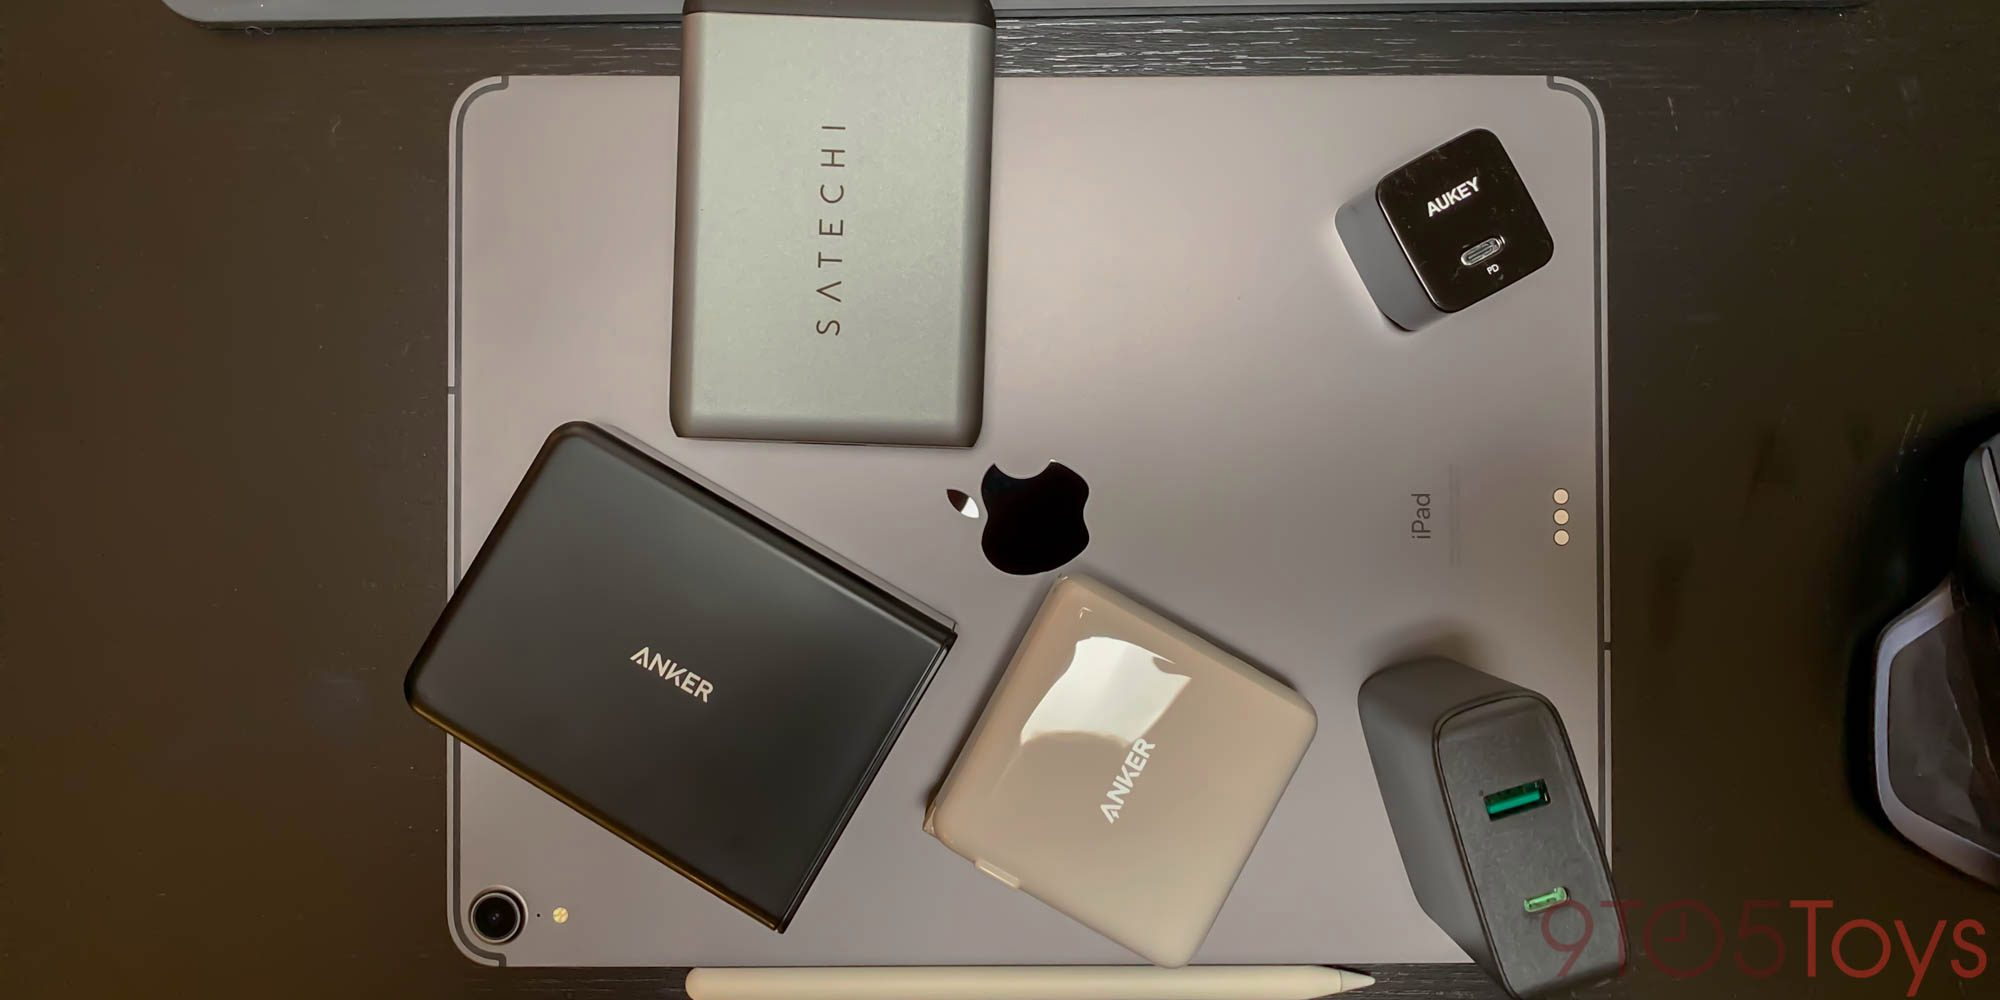 Top 5 third-party USB-C Power Delivery chargers for your new iPad Pro from $15